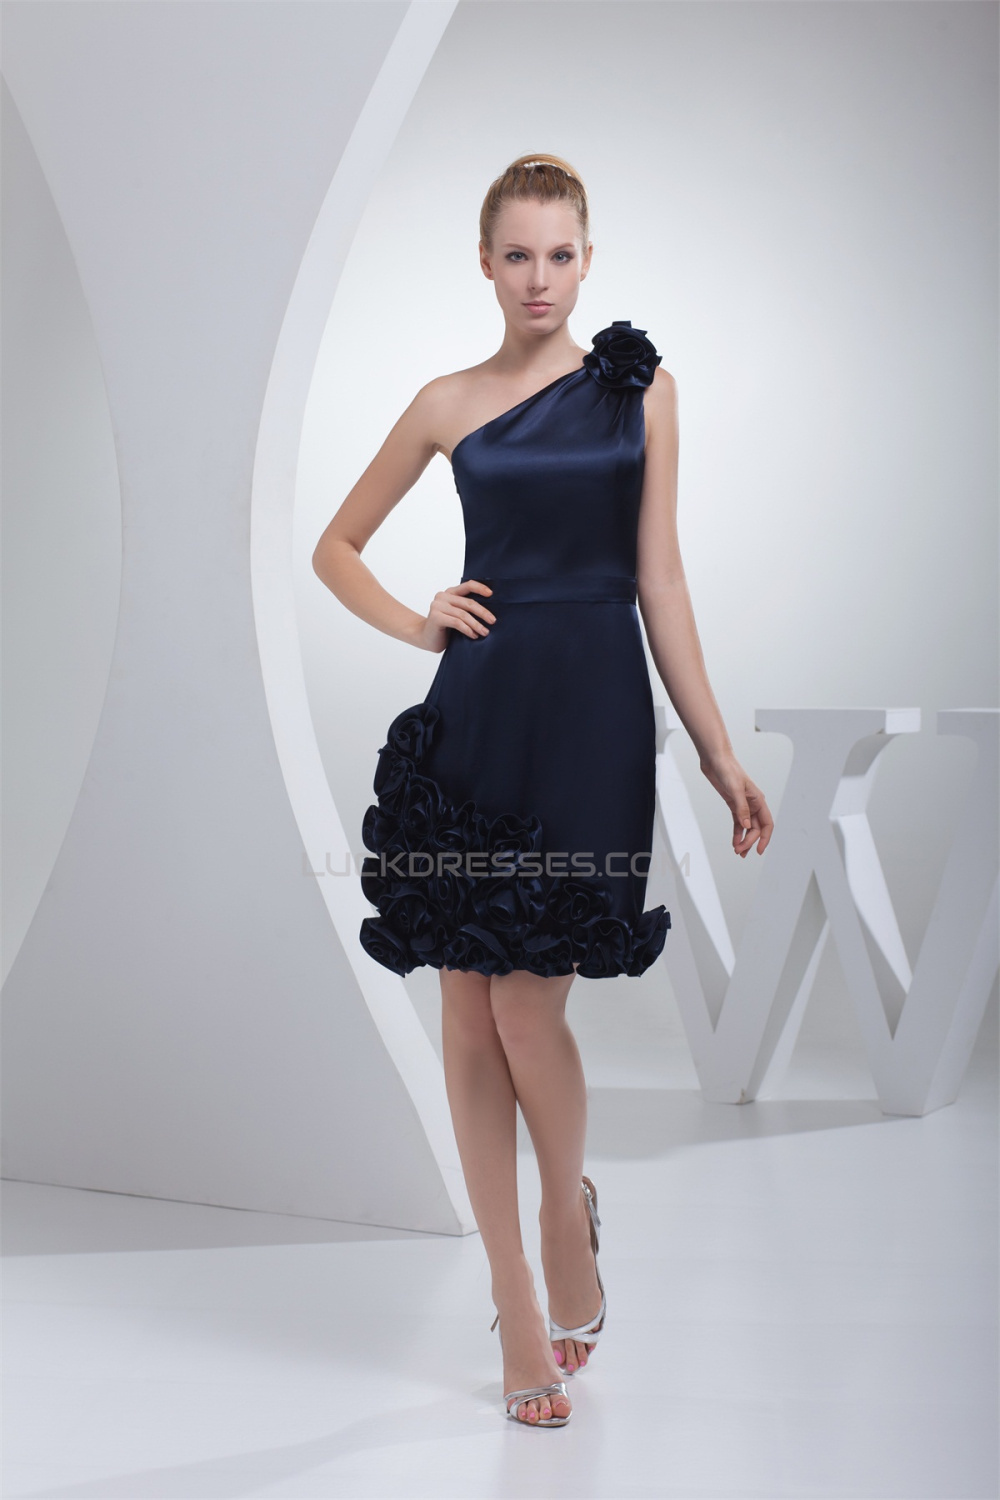 2a48251f1b One-Shoulder Handmade Flowers Knee-Length Short Navy Blue Bridesmaid Dresses  02010316